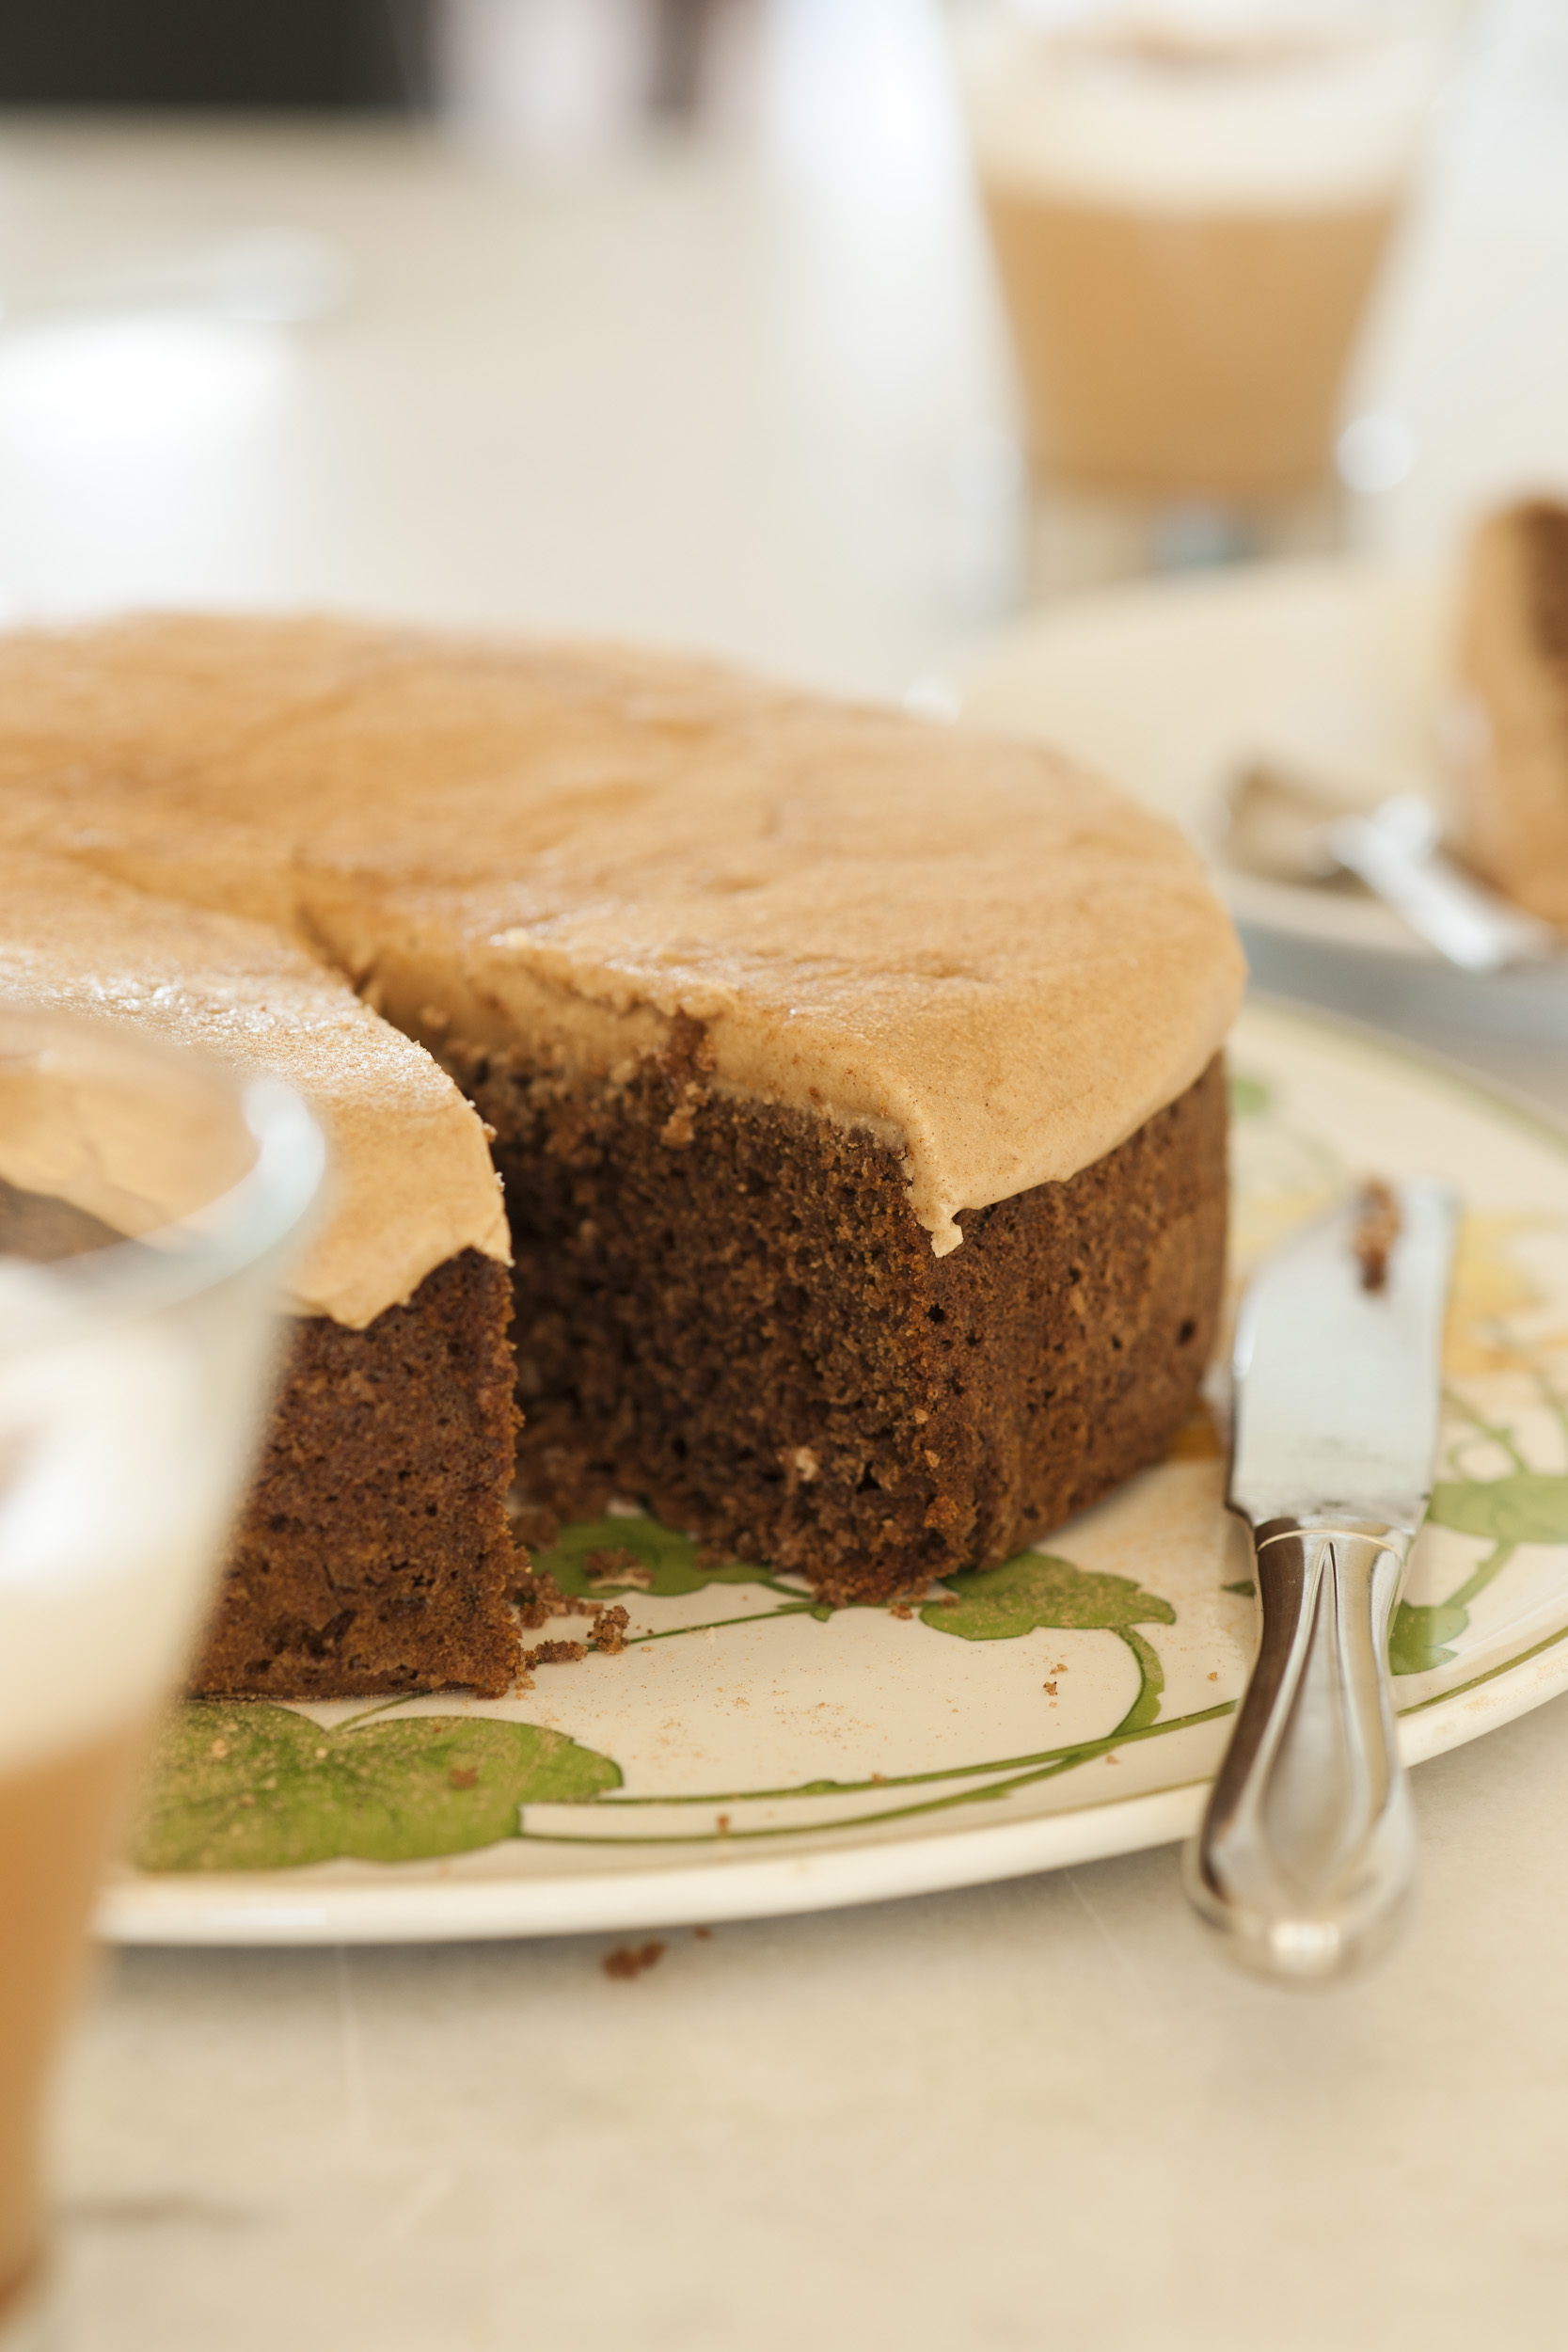 Carob Cake with Carob Icing using Australian Carobs